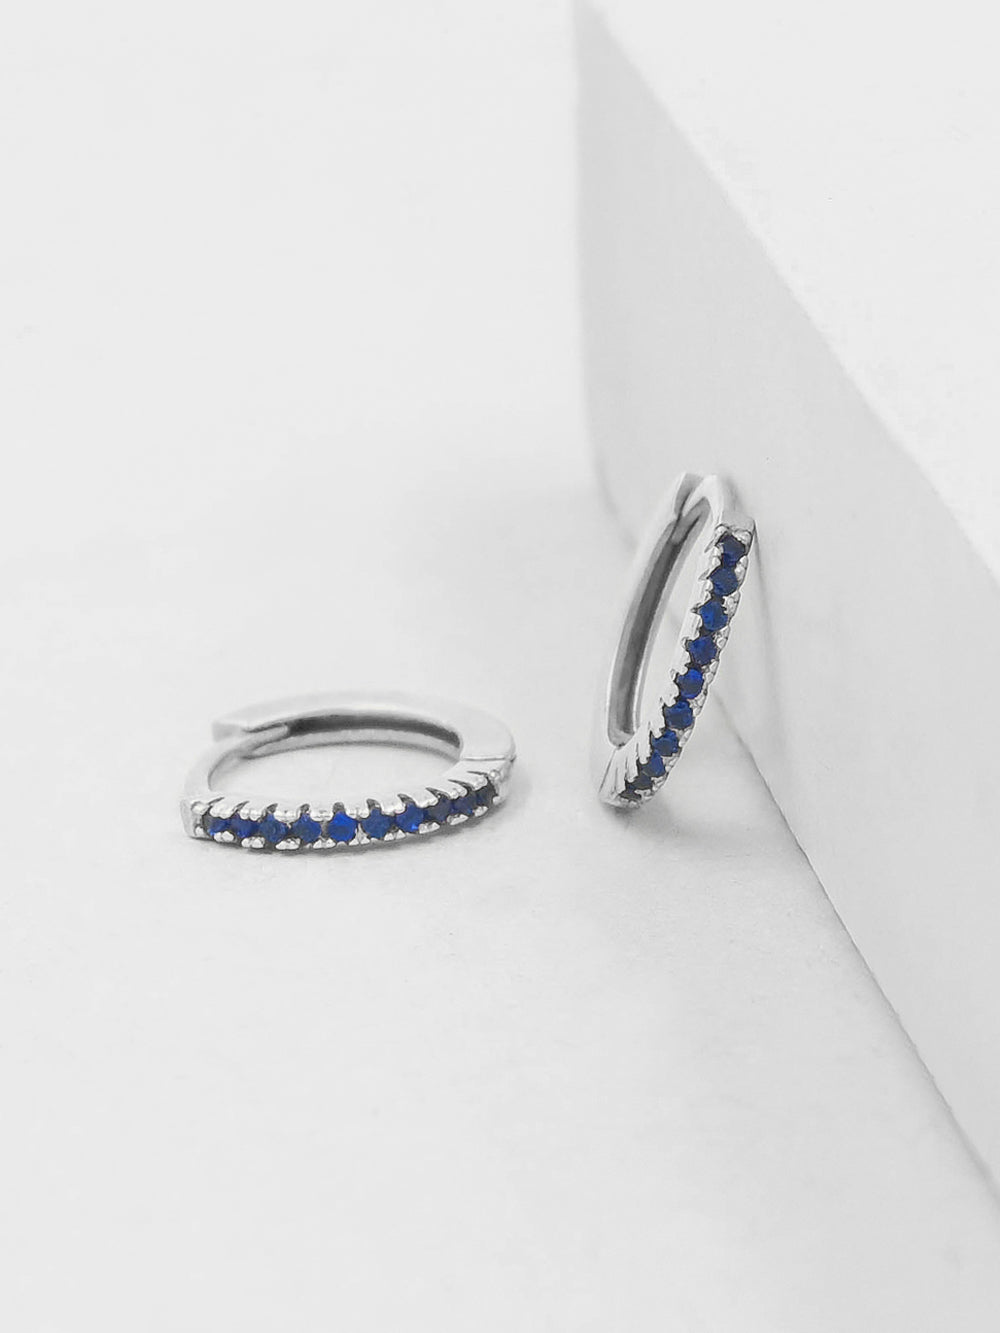 Silver Super Dainty Hoop Huggie Earrings with Blue Sapphire Round Cubic Zirconia by The Faint Hearted Jewelry